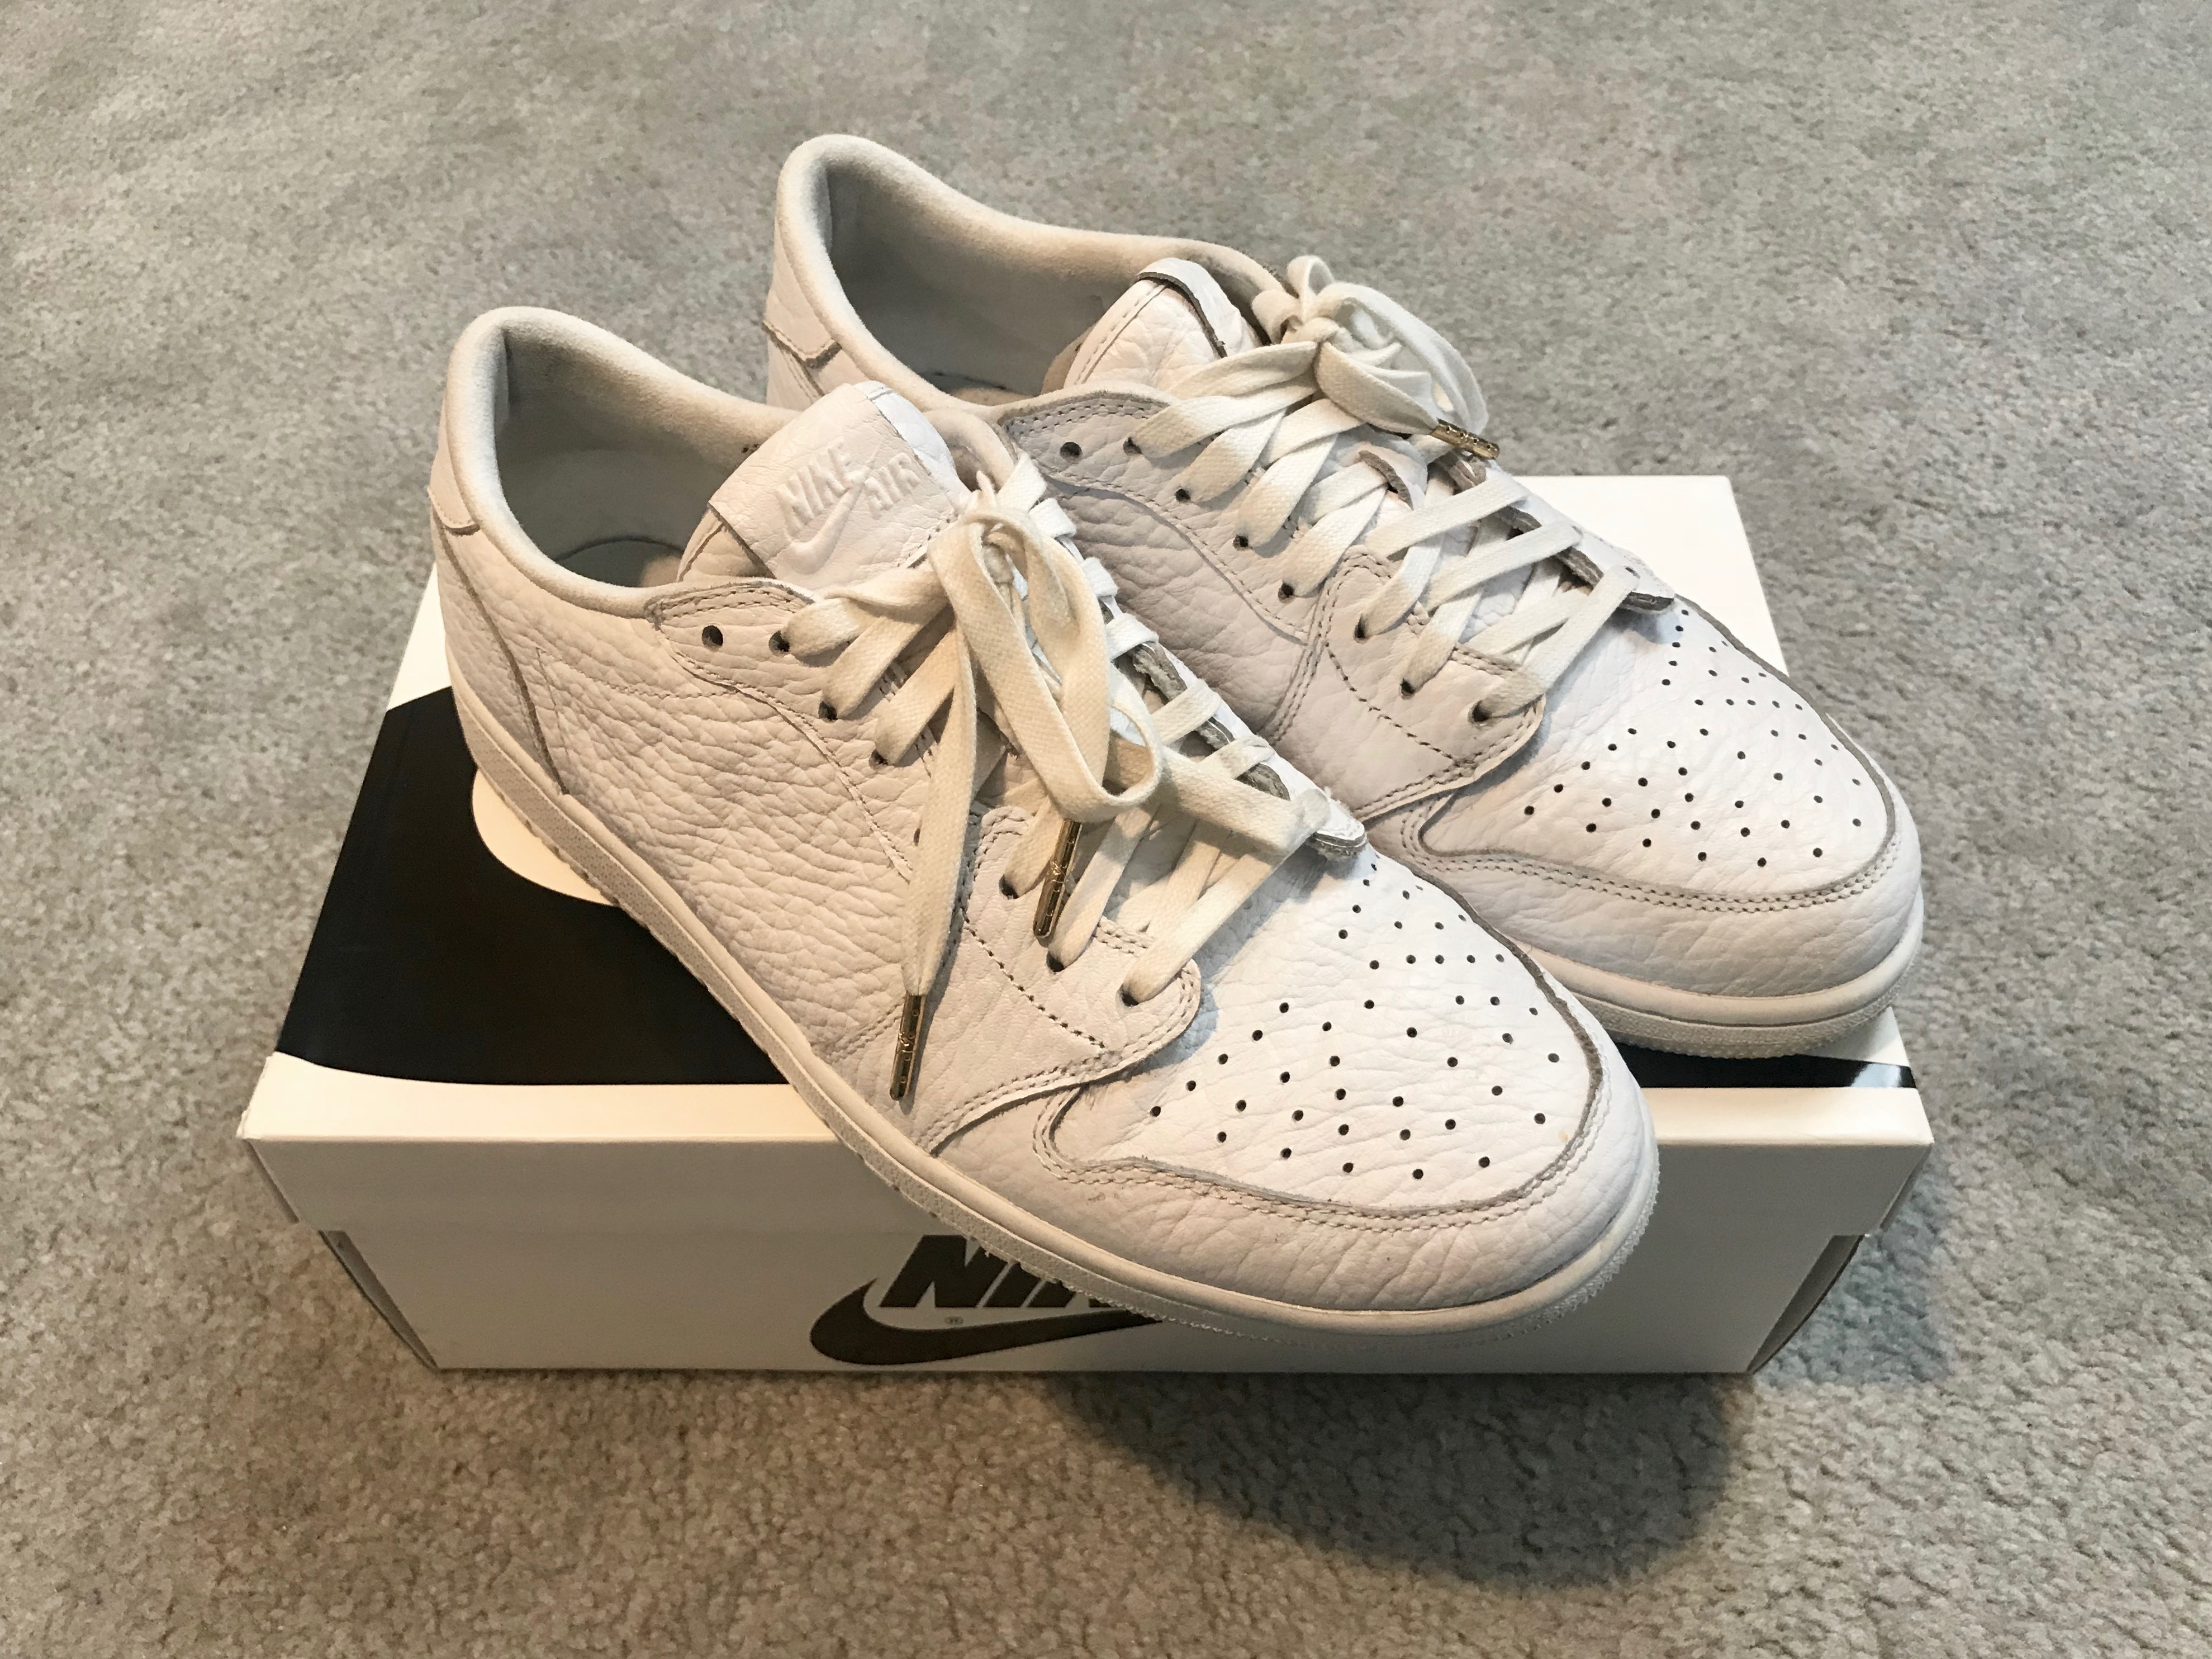 392de719872b3c Nike Jordan 1 Low NS No Swoosh Triple White Size 10.5 - Low-Top ...